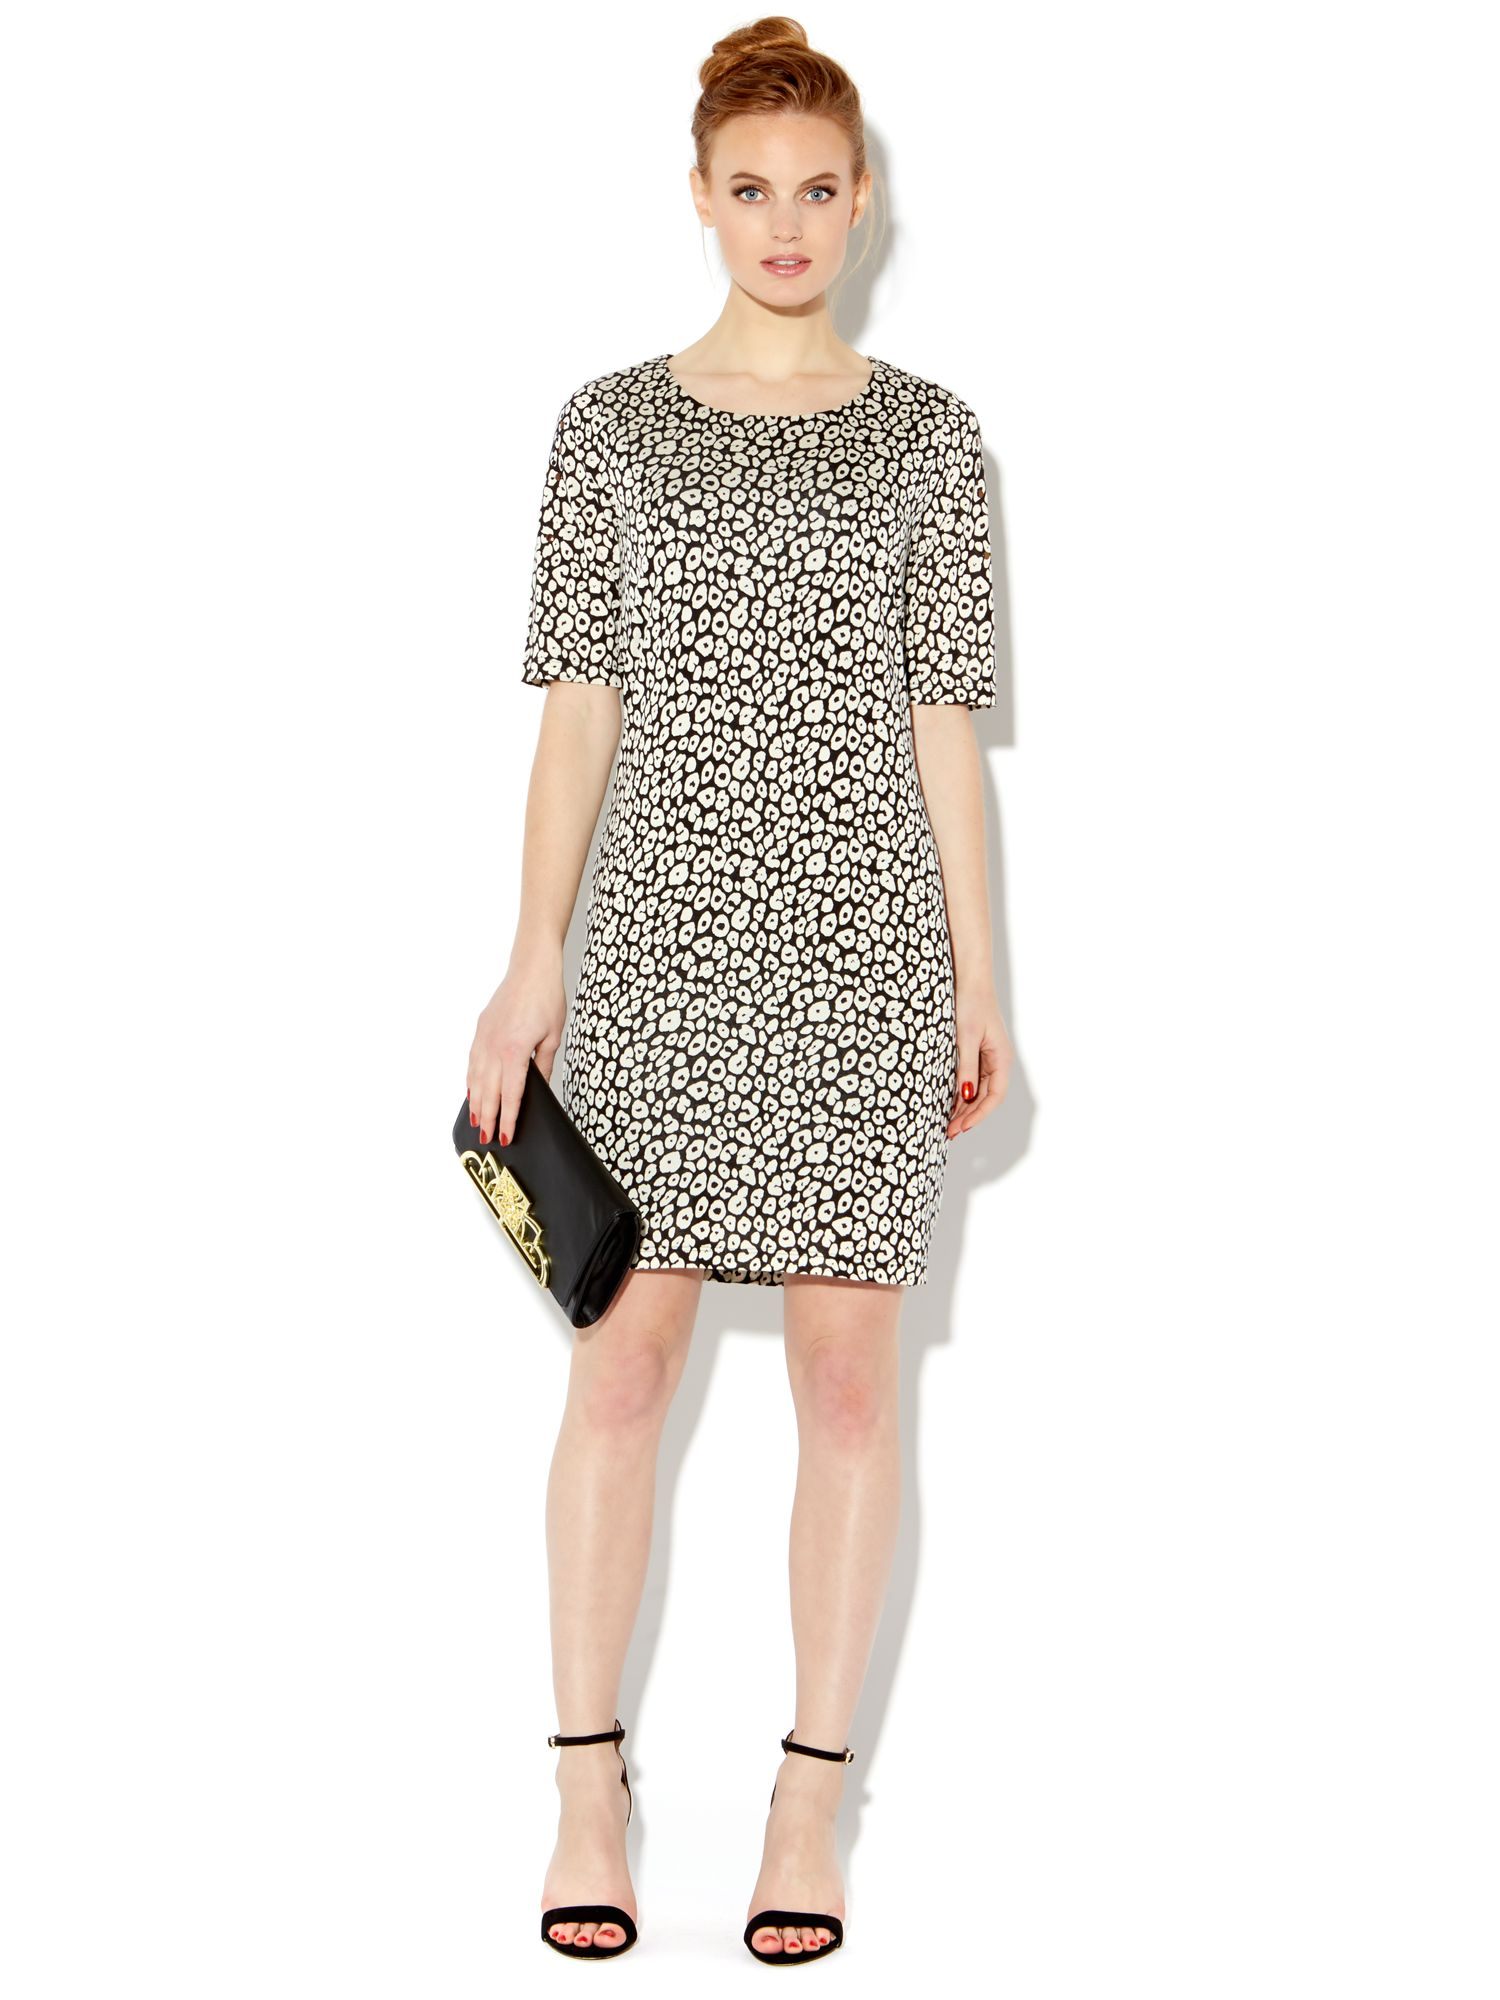 Leopard stud detail bodycon dress